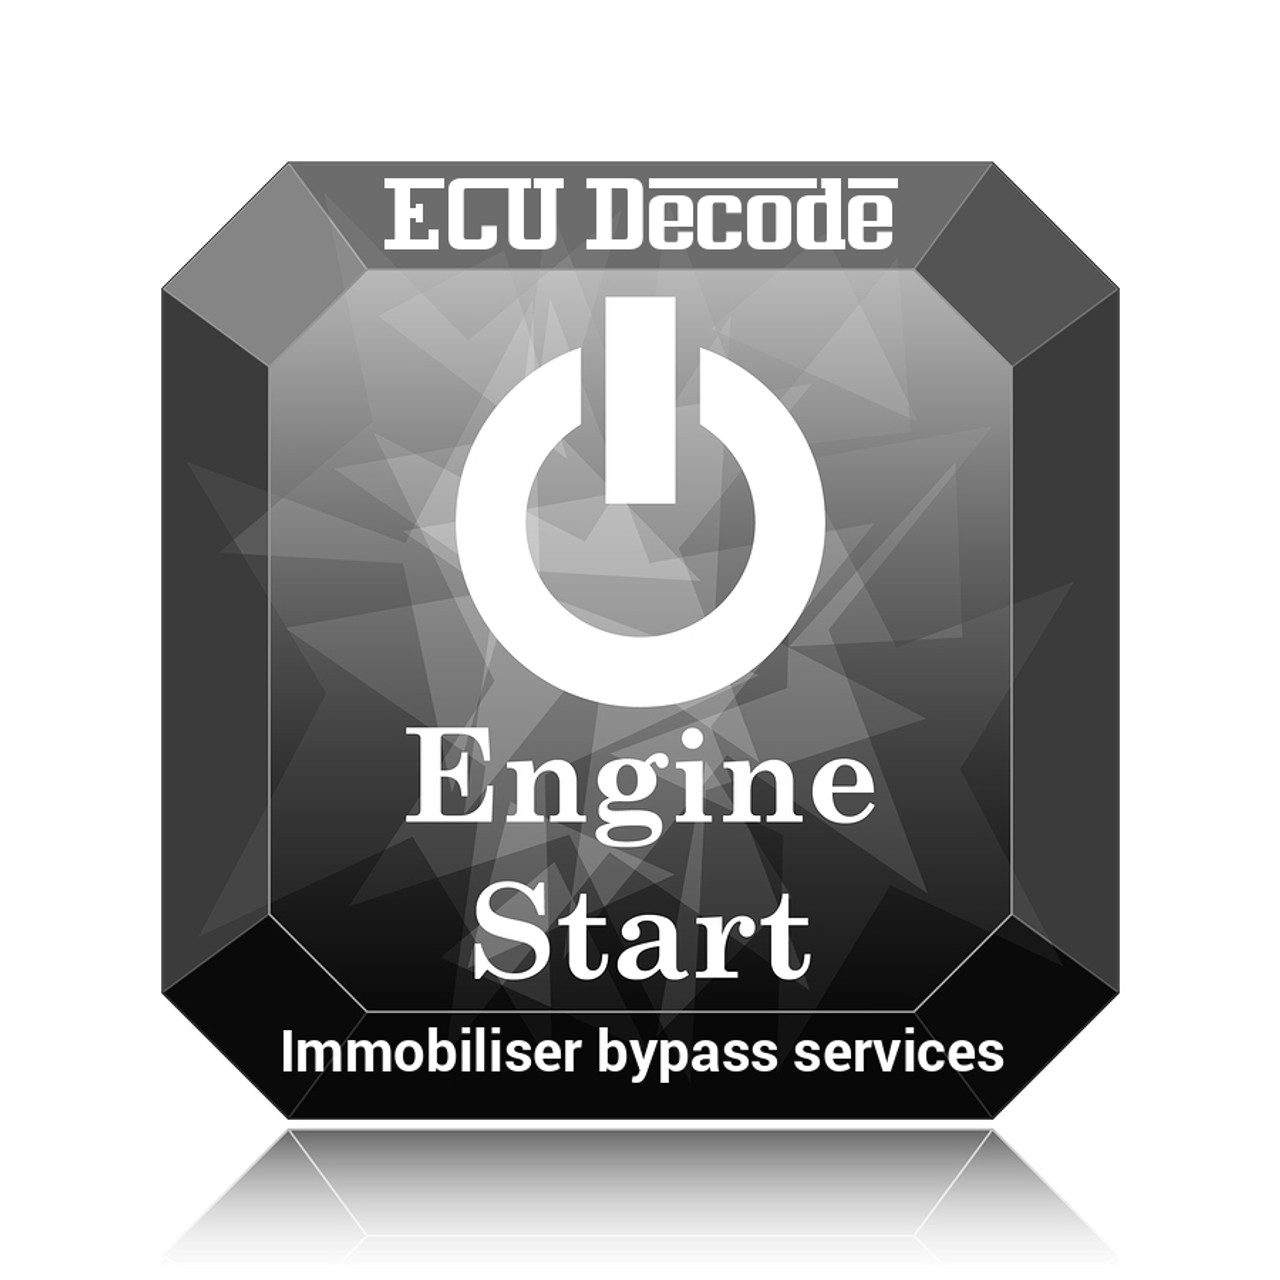 Ford Immobiliser Bypass Services - ECU Decode Limited